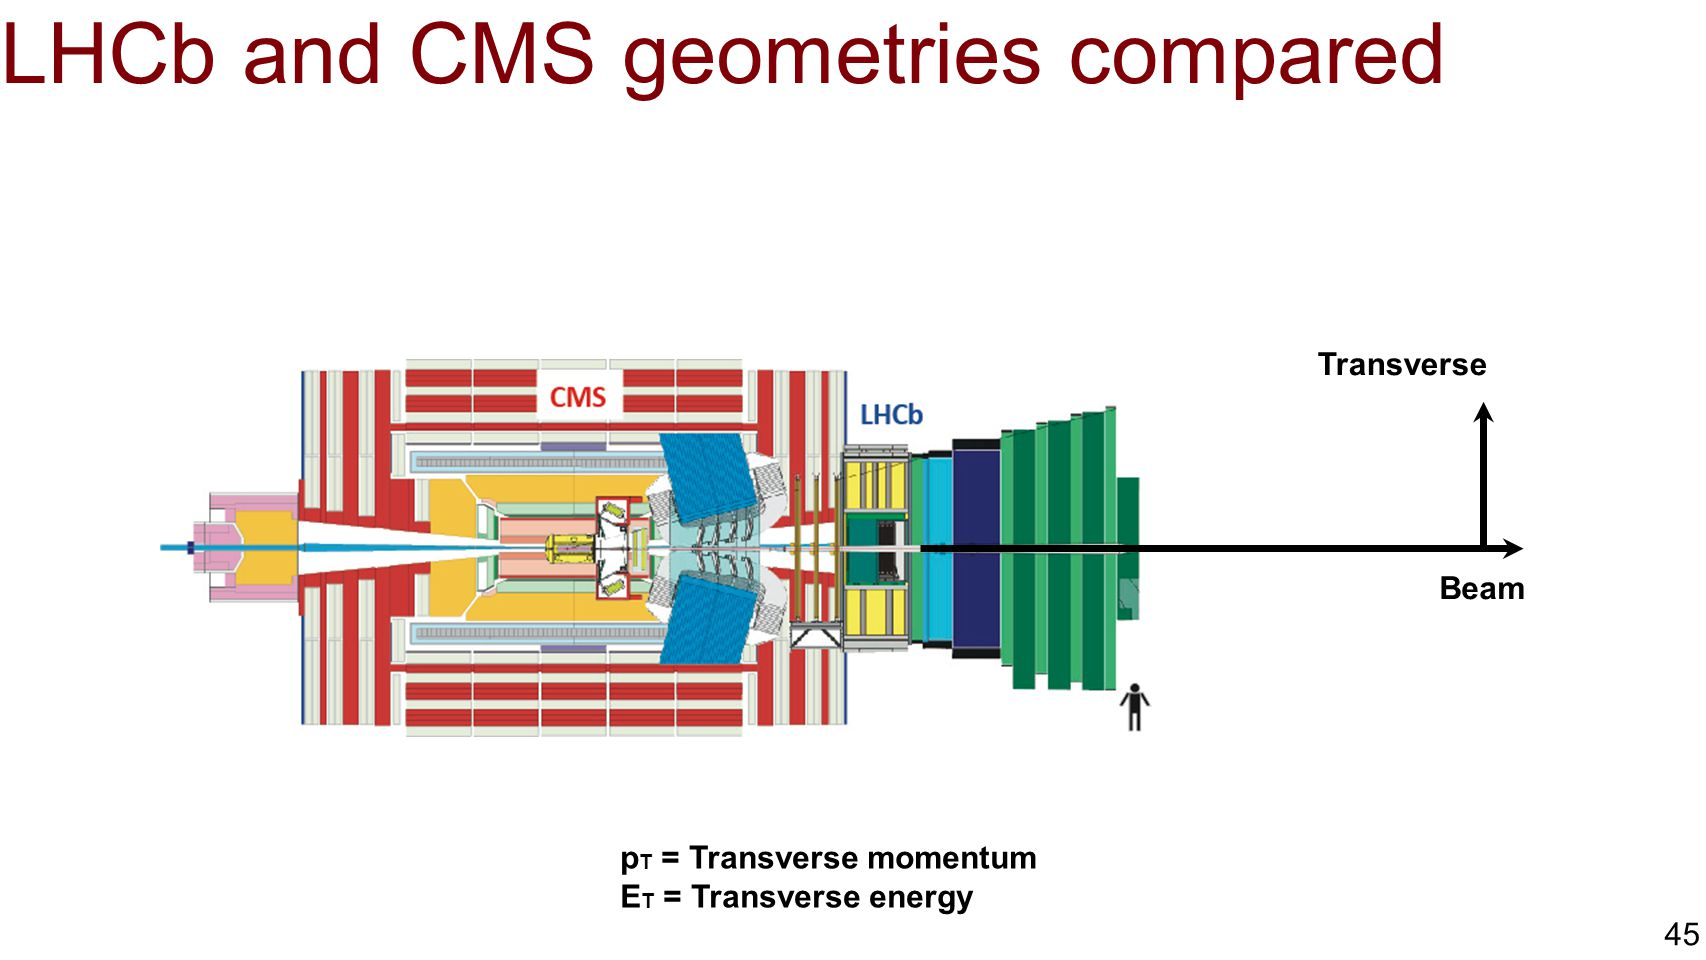 LHCb and CMS geometries compared